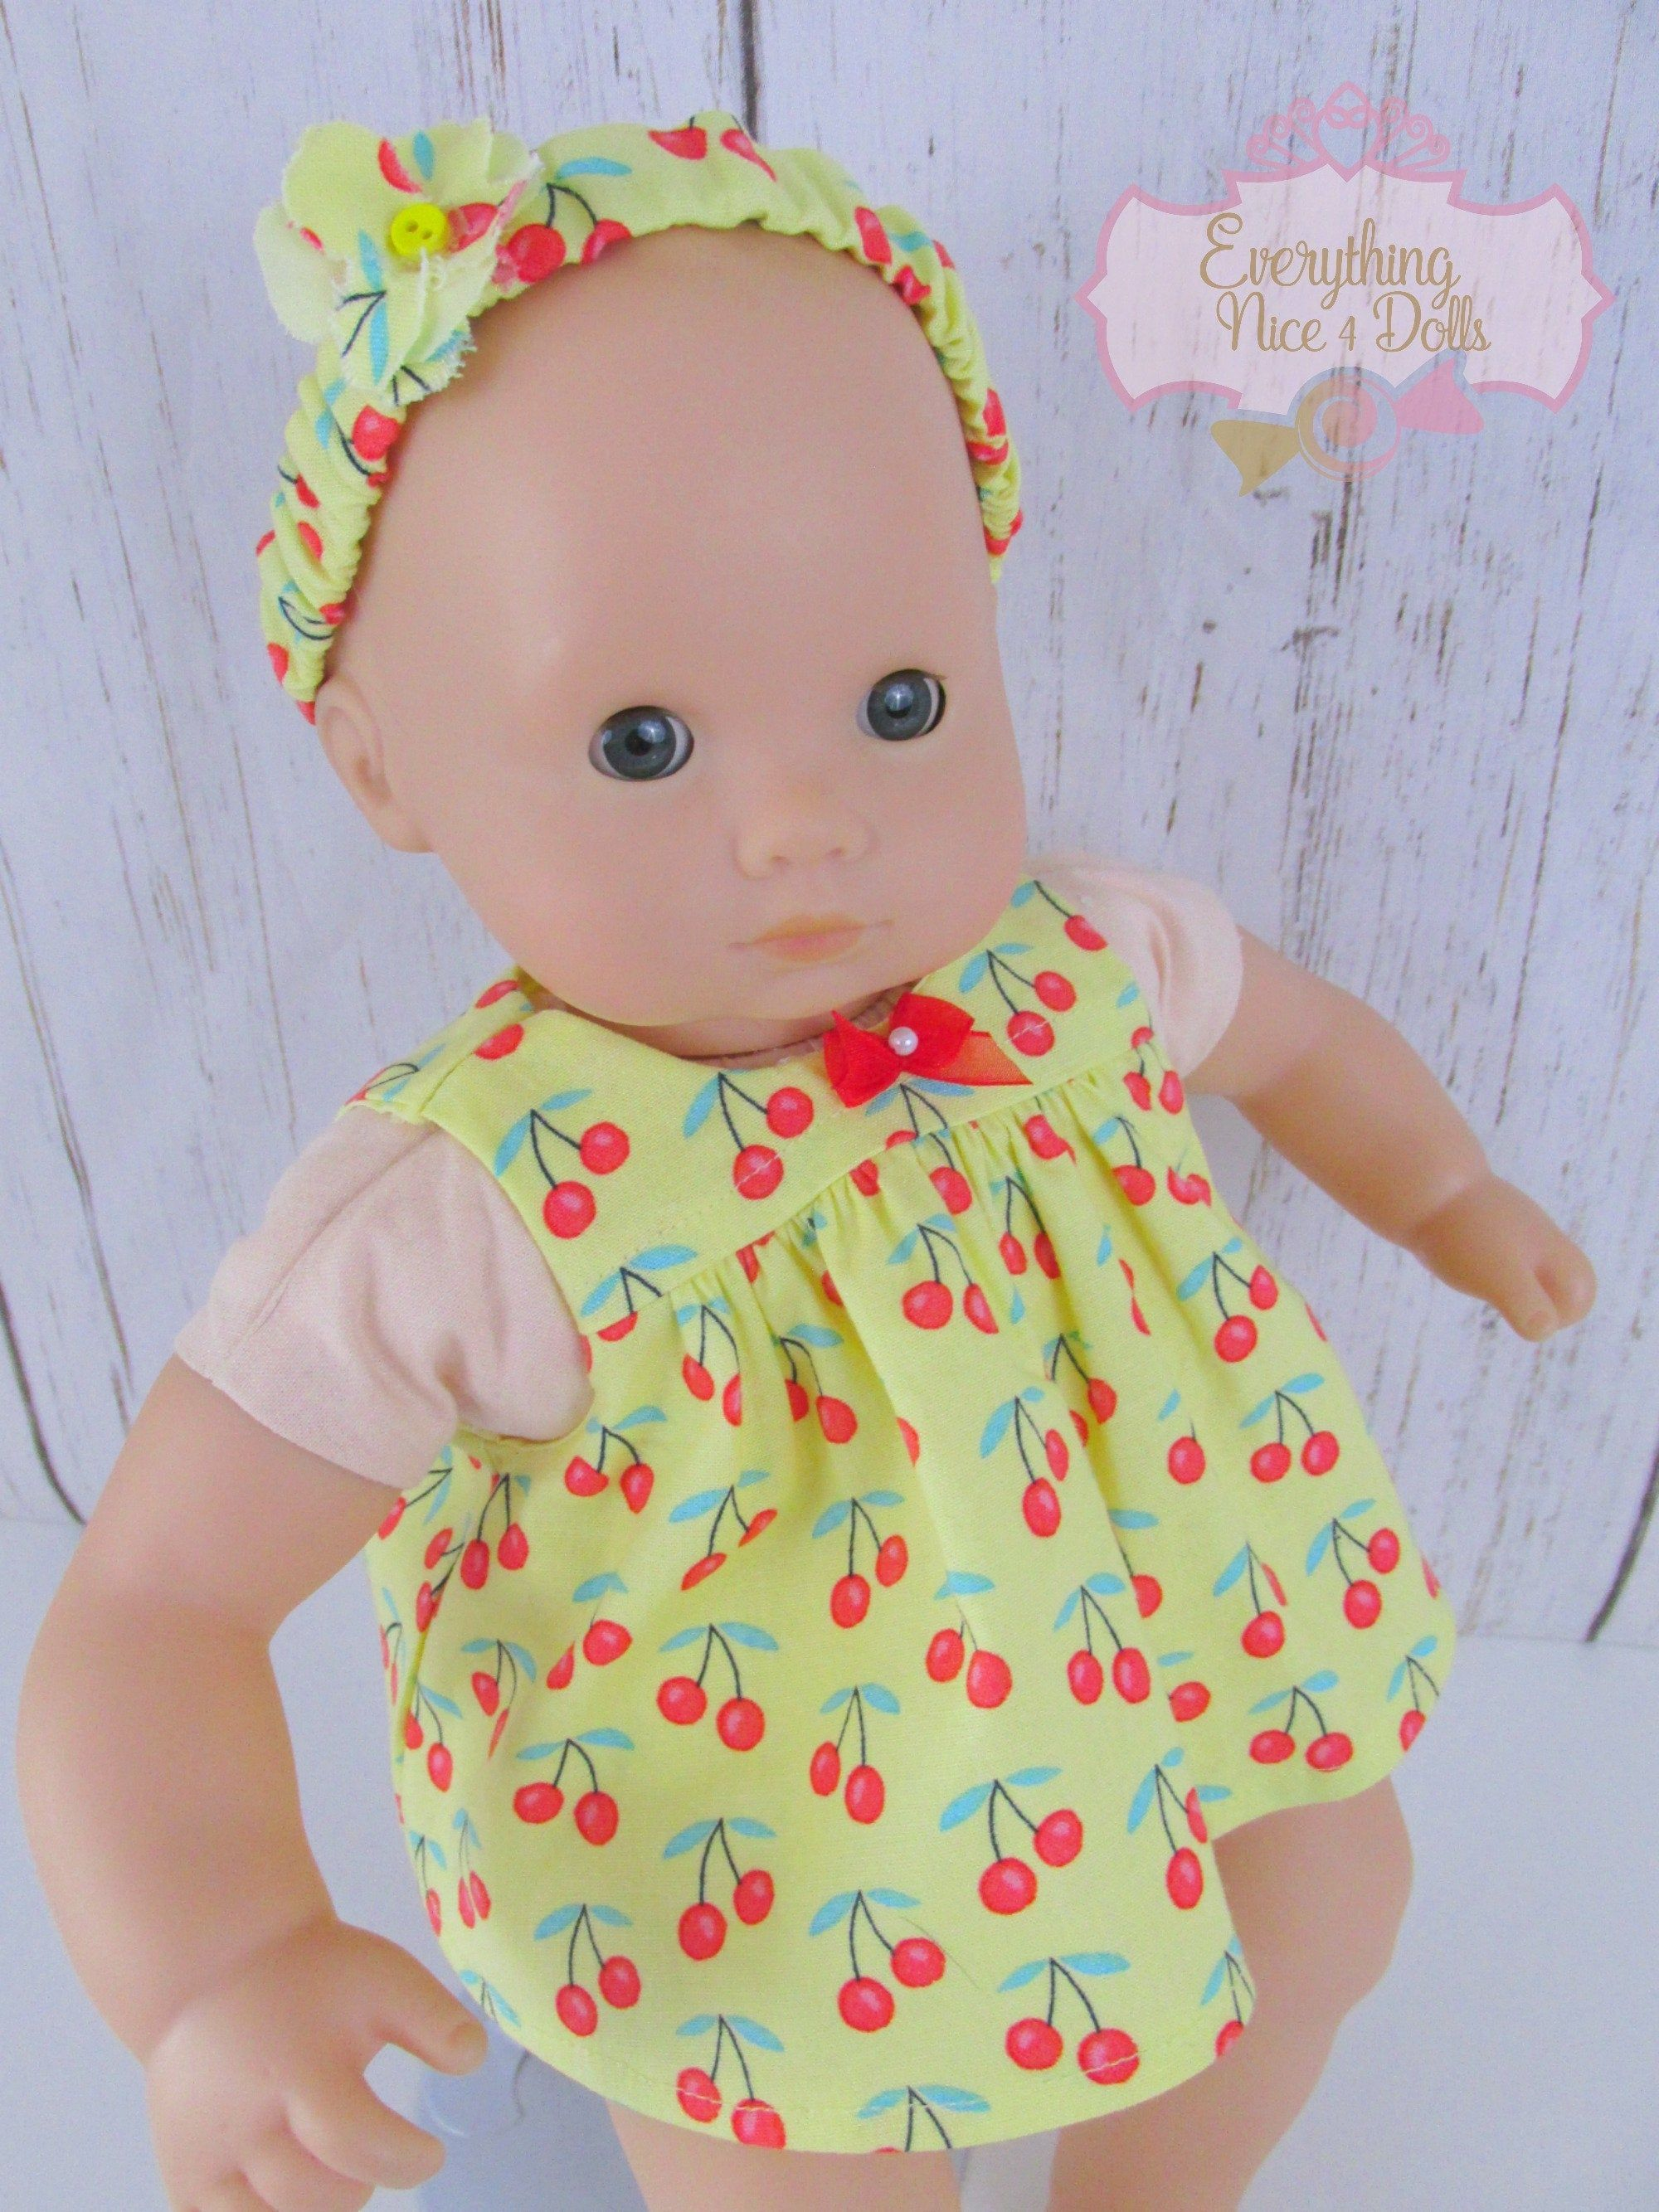 Cherry Baby Doll Dress Yellow Romper Dress 15 Inch Doll Etsy Baby Doll Clothes Simple Baby Clothes Kids Clothes Patterns